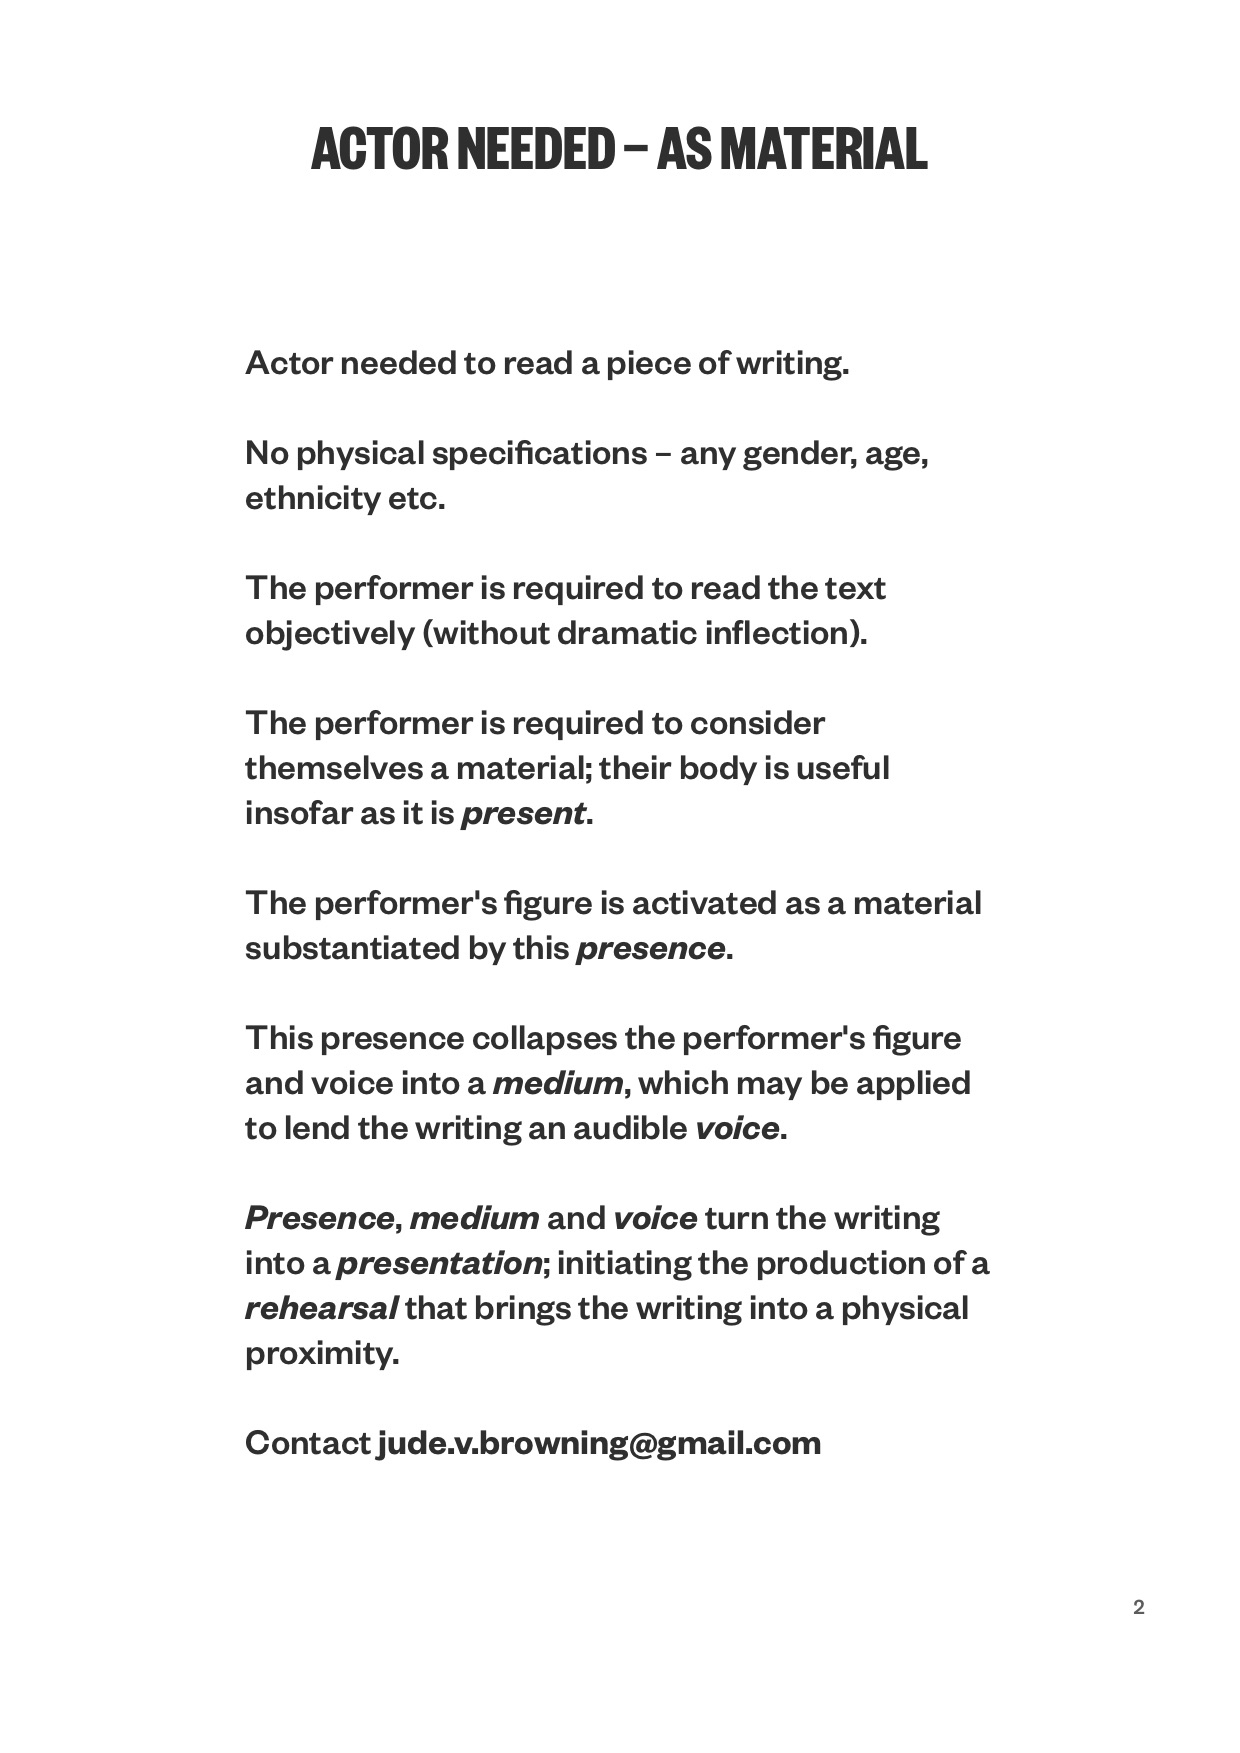 Actor Needed - As Material (2014)